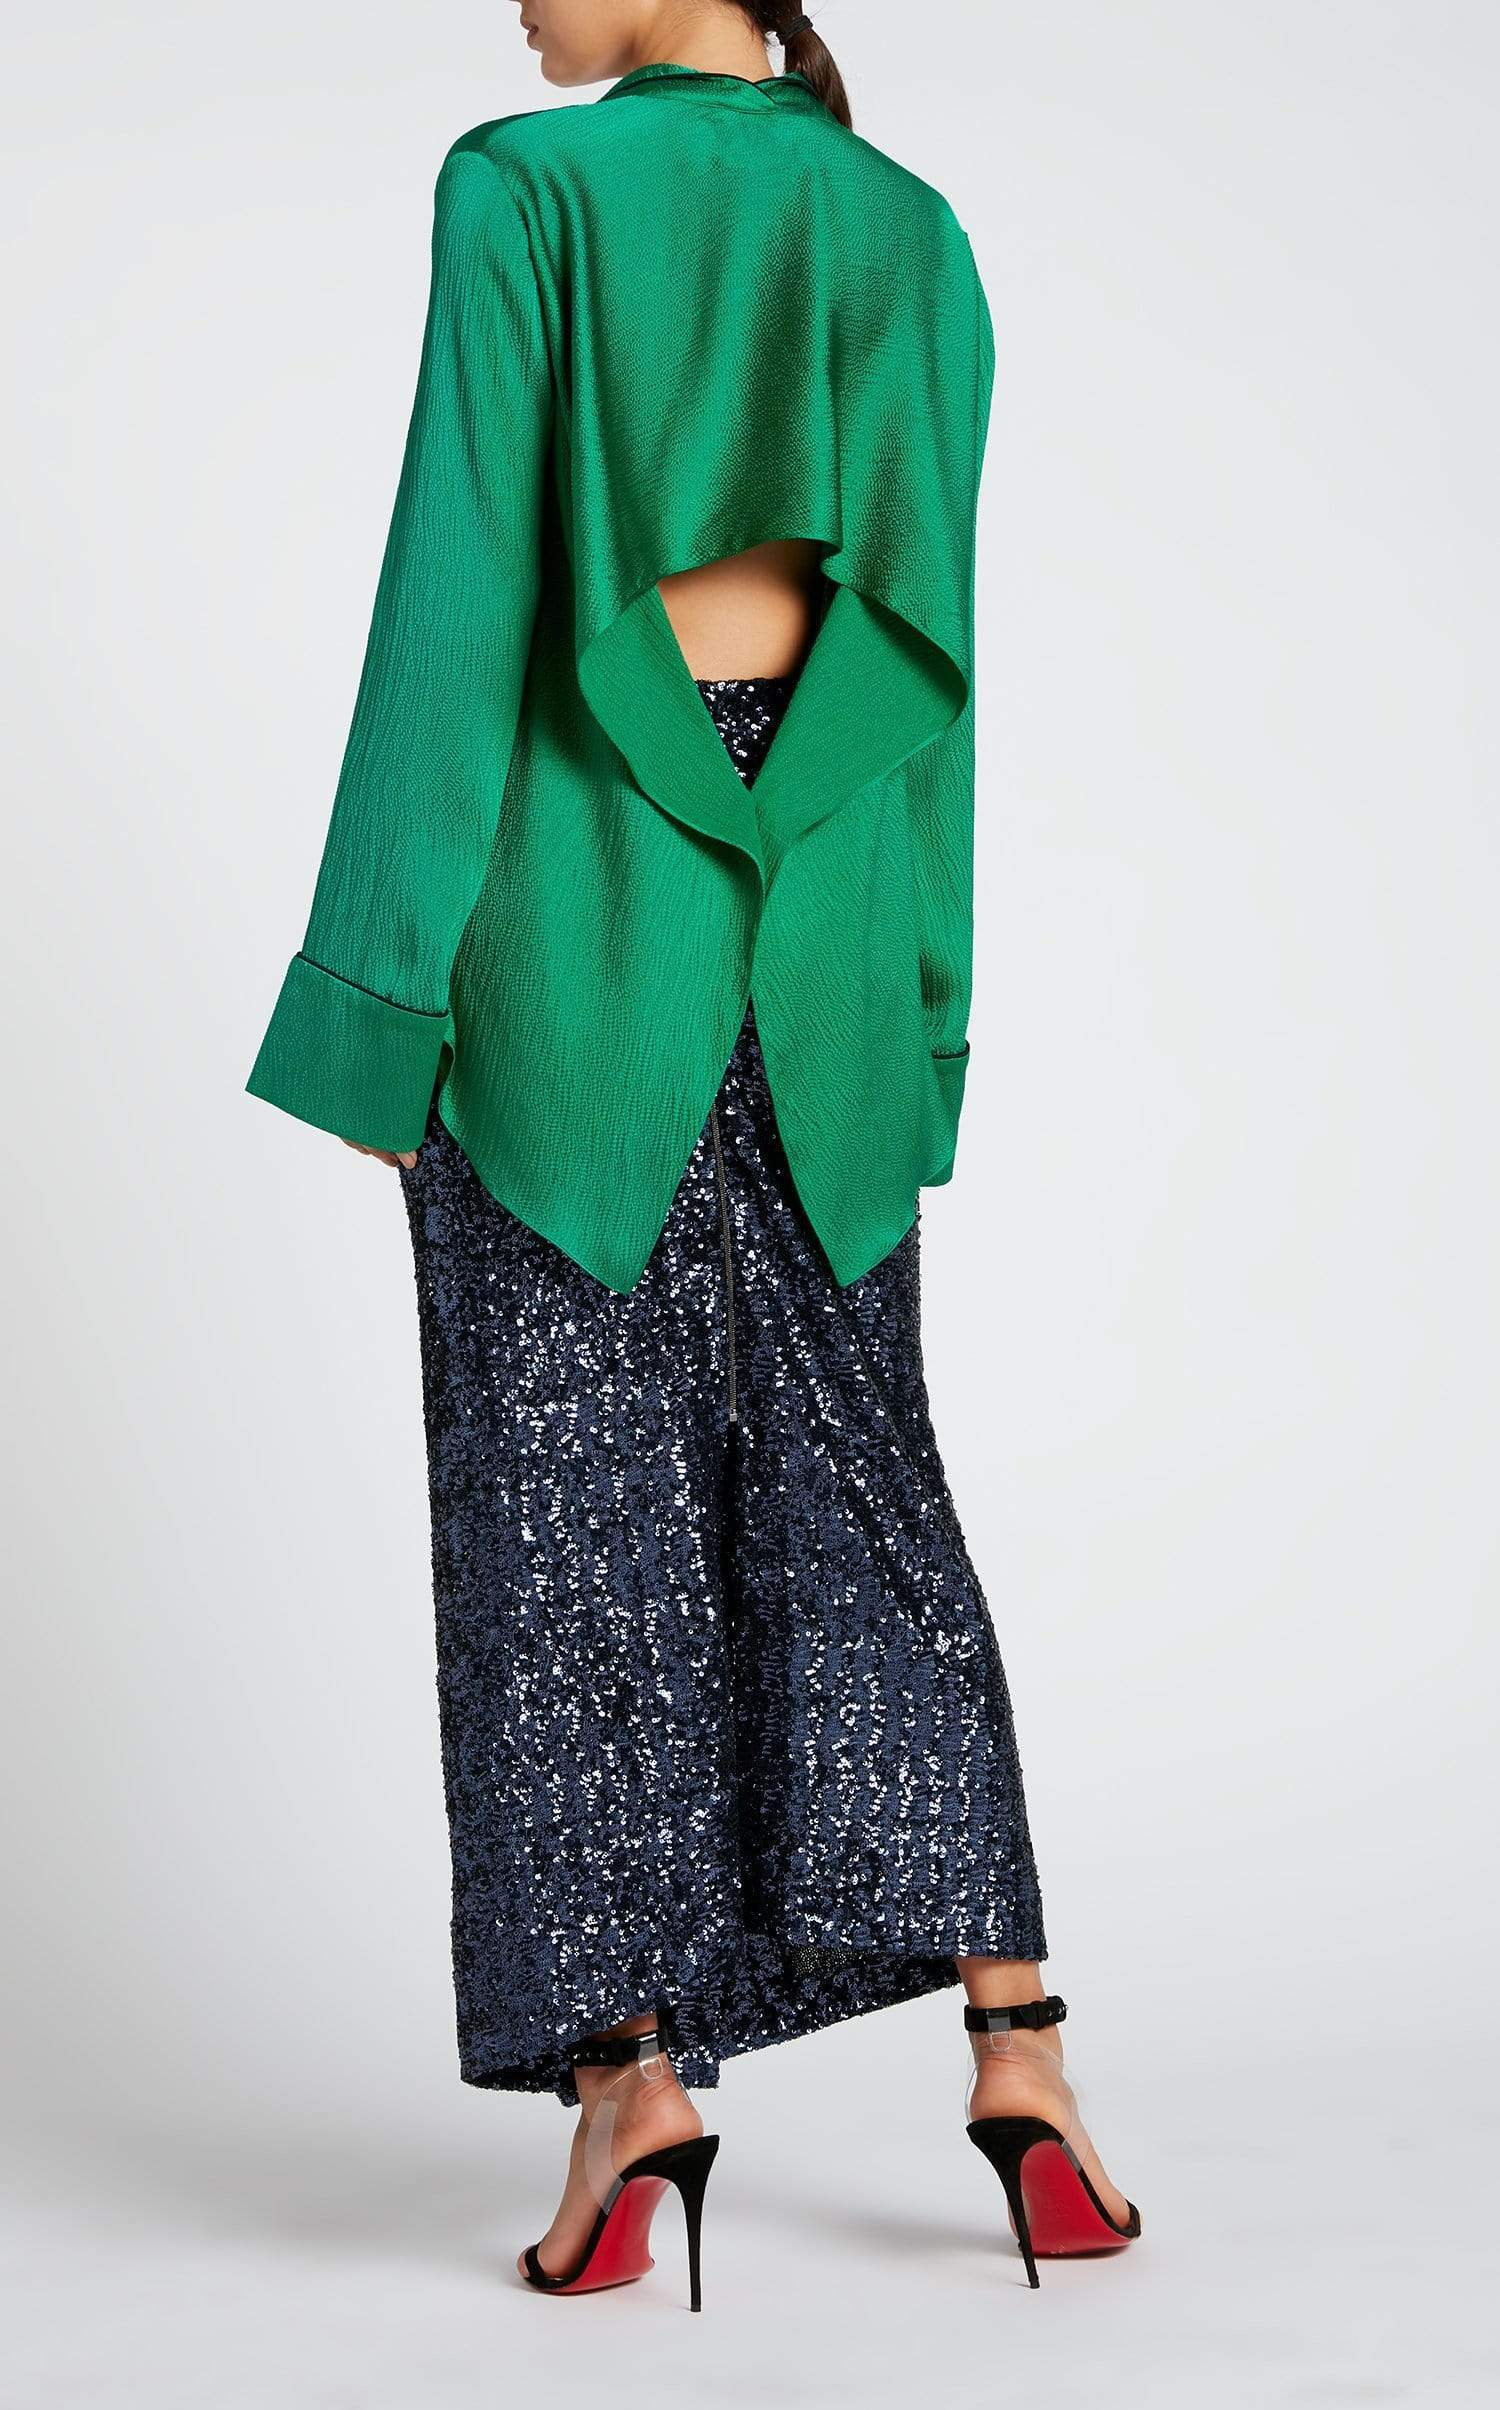 Algar Shirt In Emerald/Black from Roland Mouret